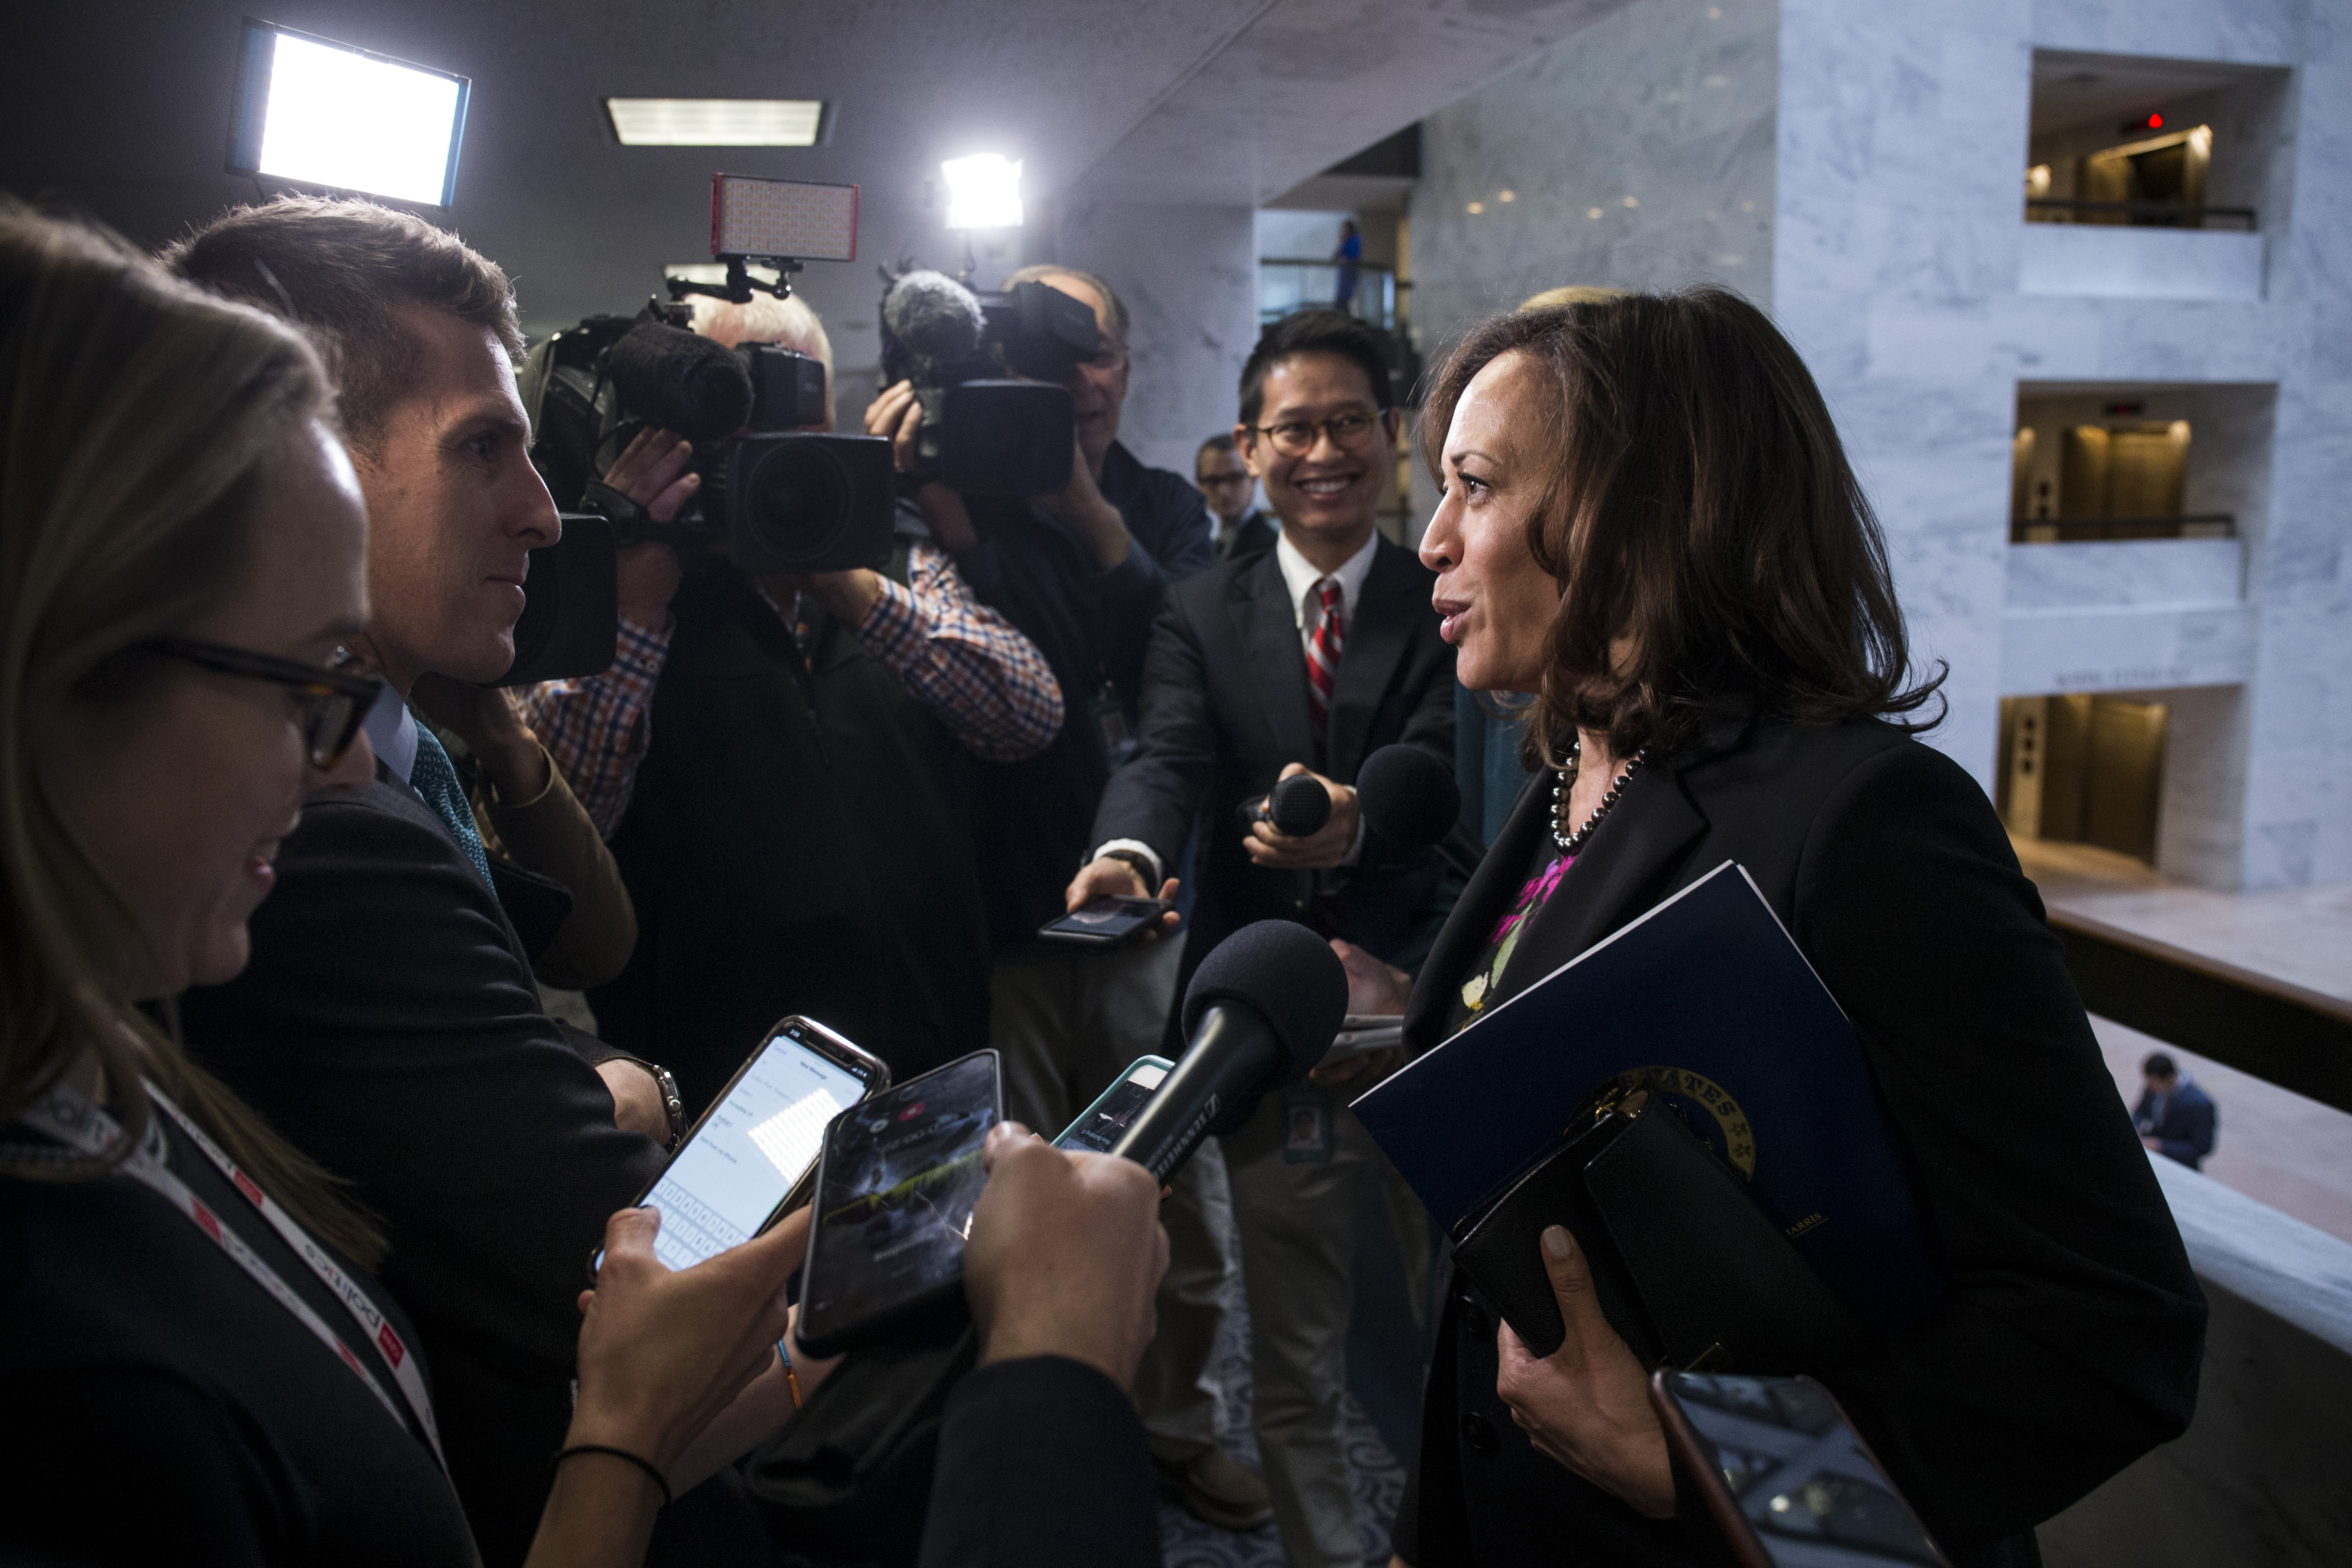 Sen. Kamala Harris speaks to reporters following a closed briefing on intelligence matters on Capitol Hill on December 4, 2018 in Washington, DC. (Photo by Zach Gibson/Getty Images)